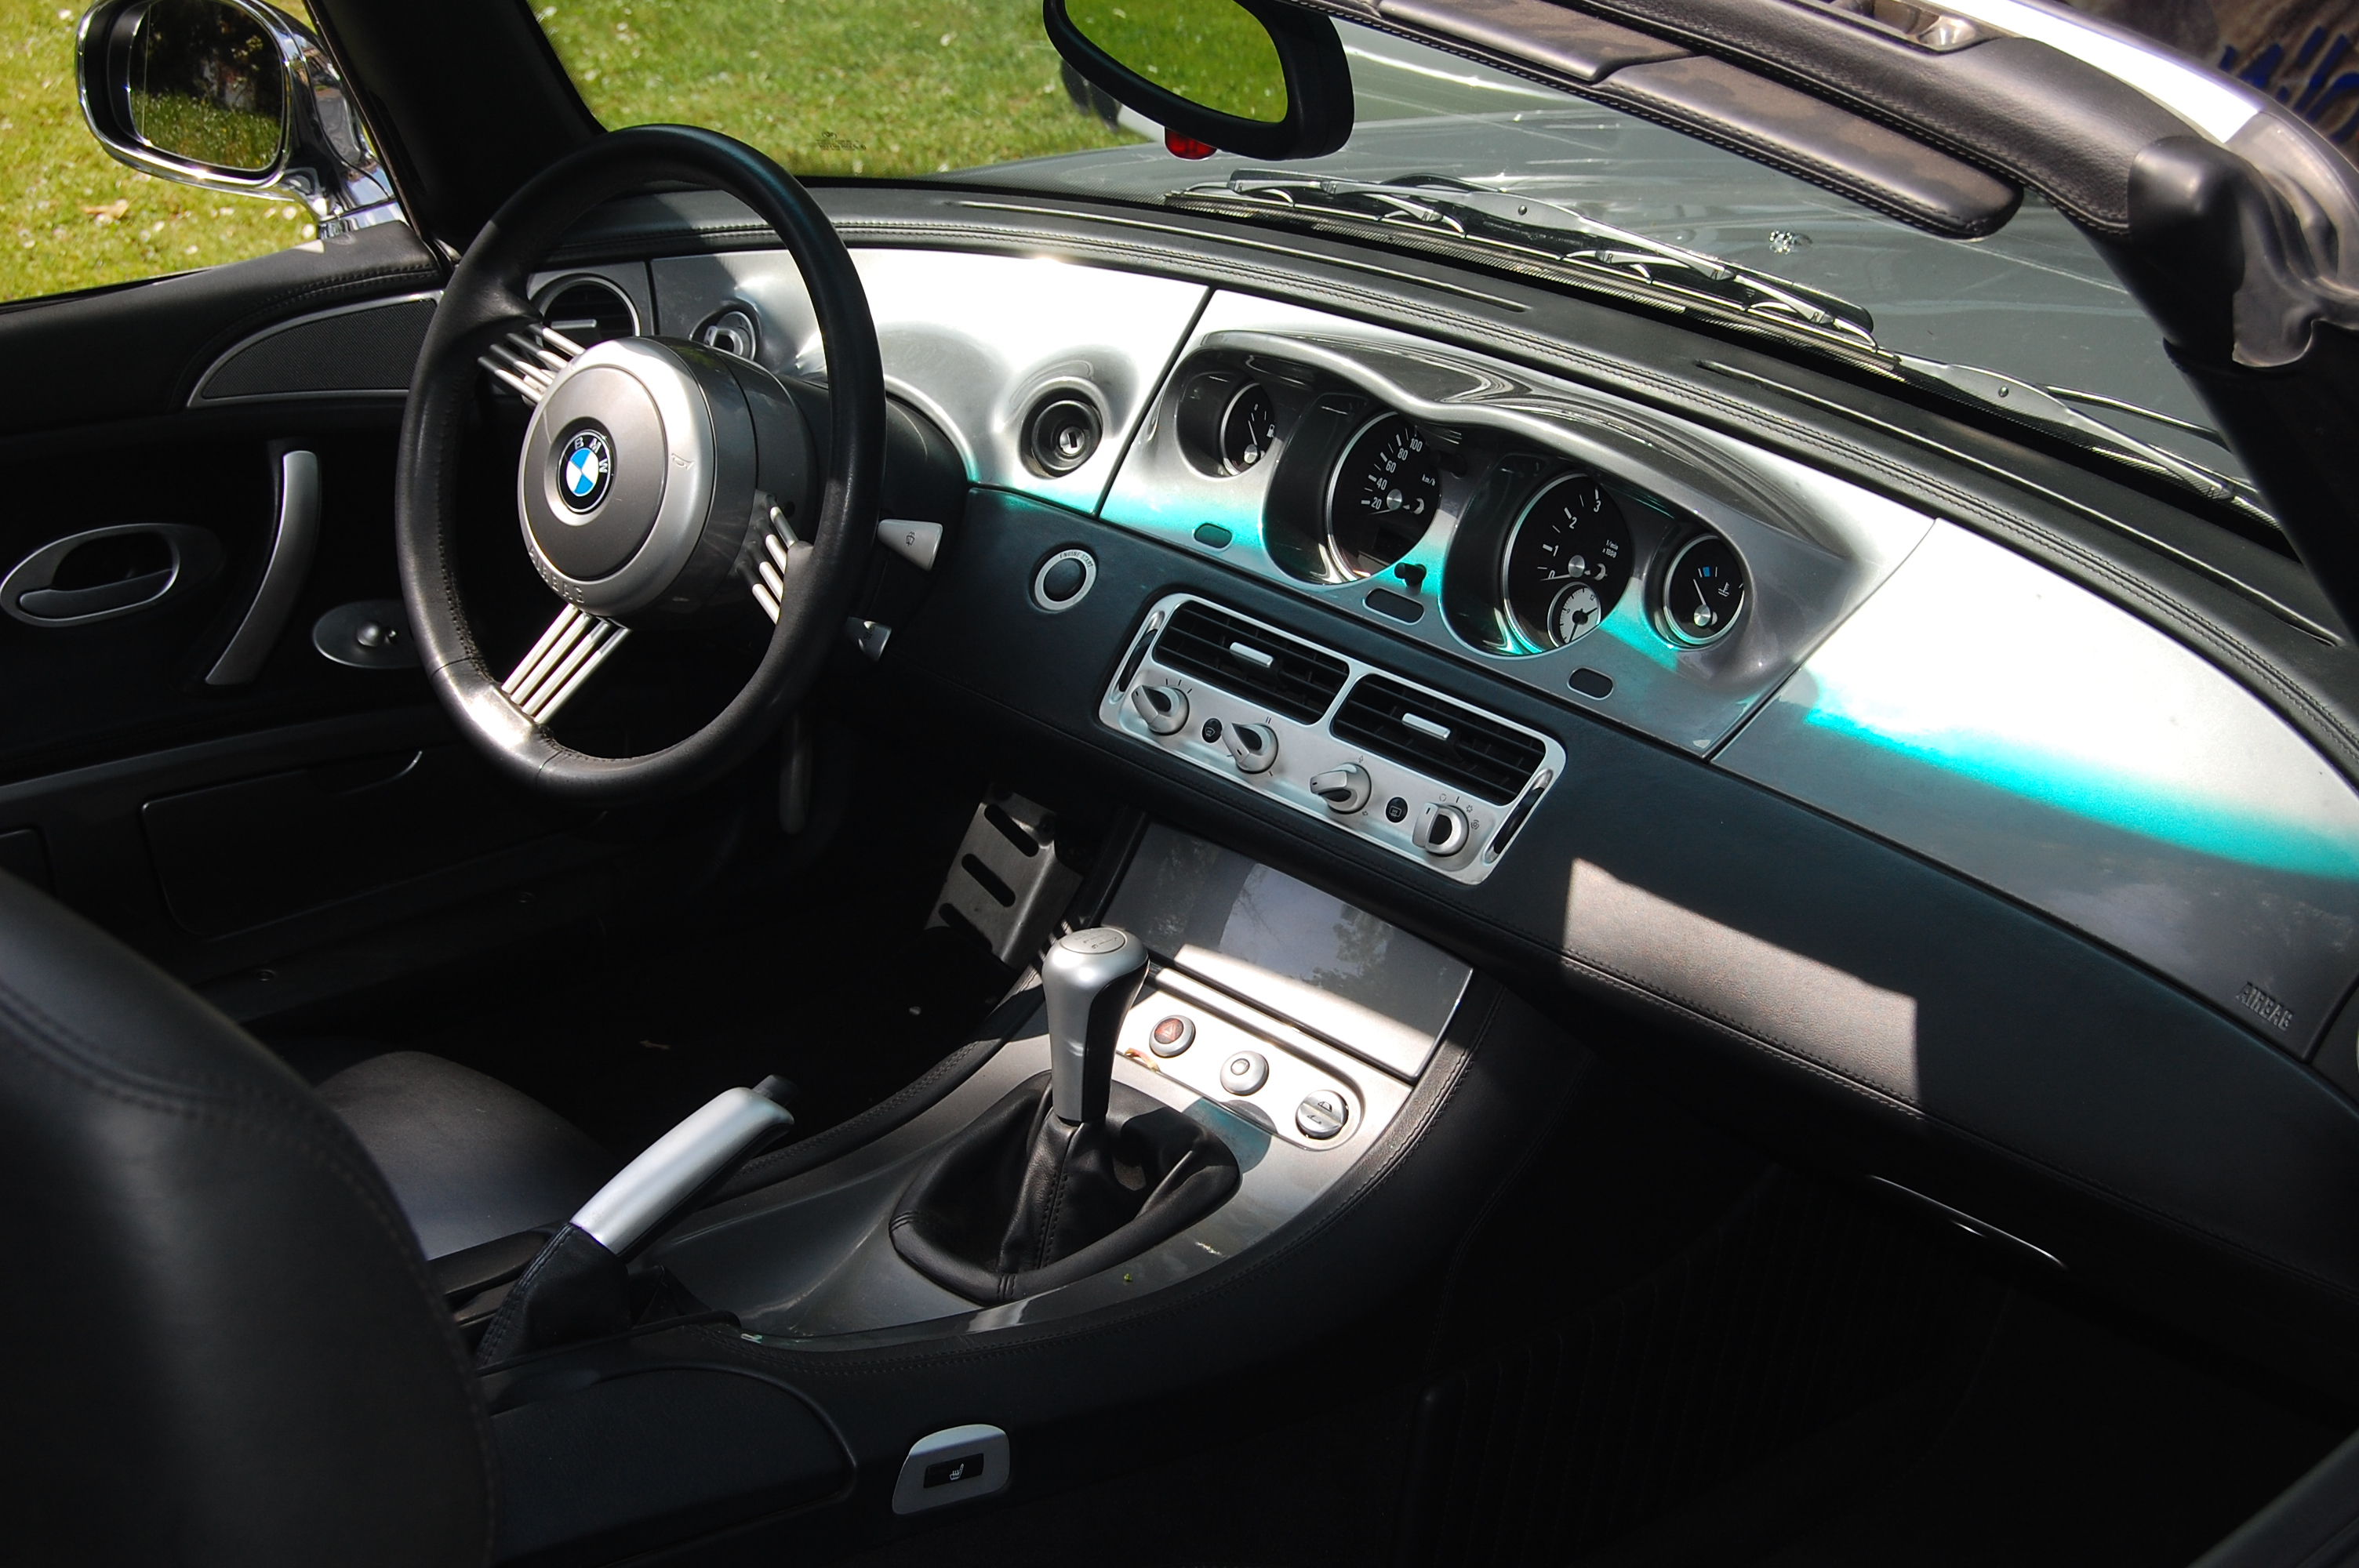 File Bmw Z8 Interieur Jpg Wikimedia Commons